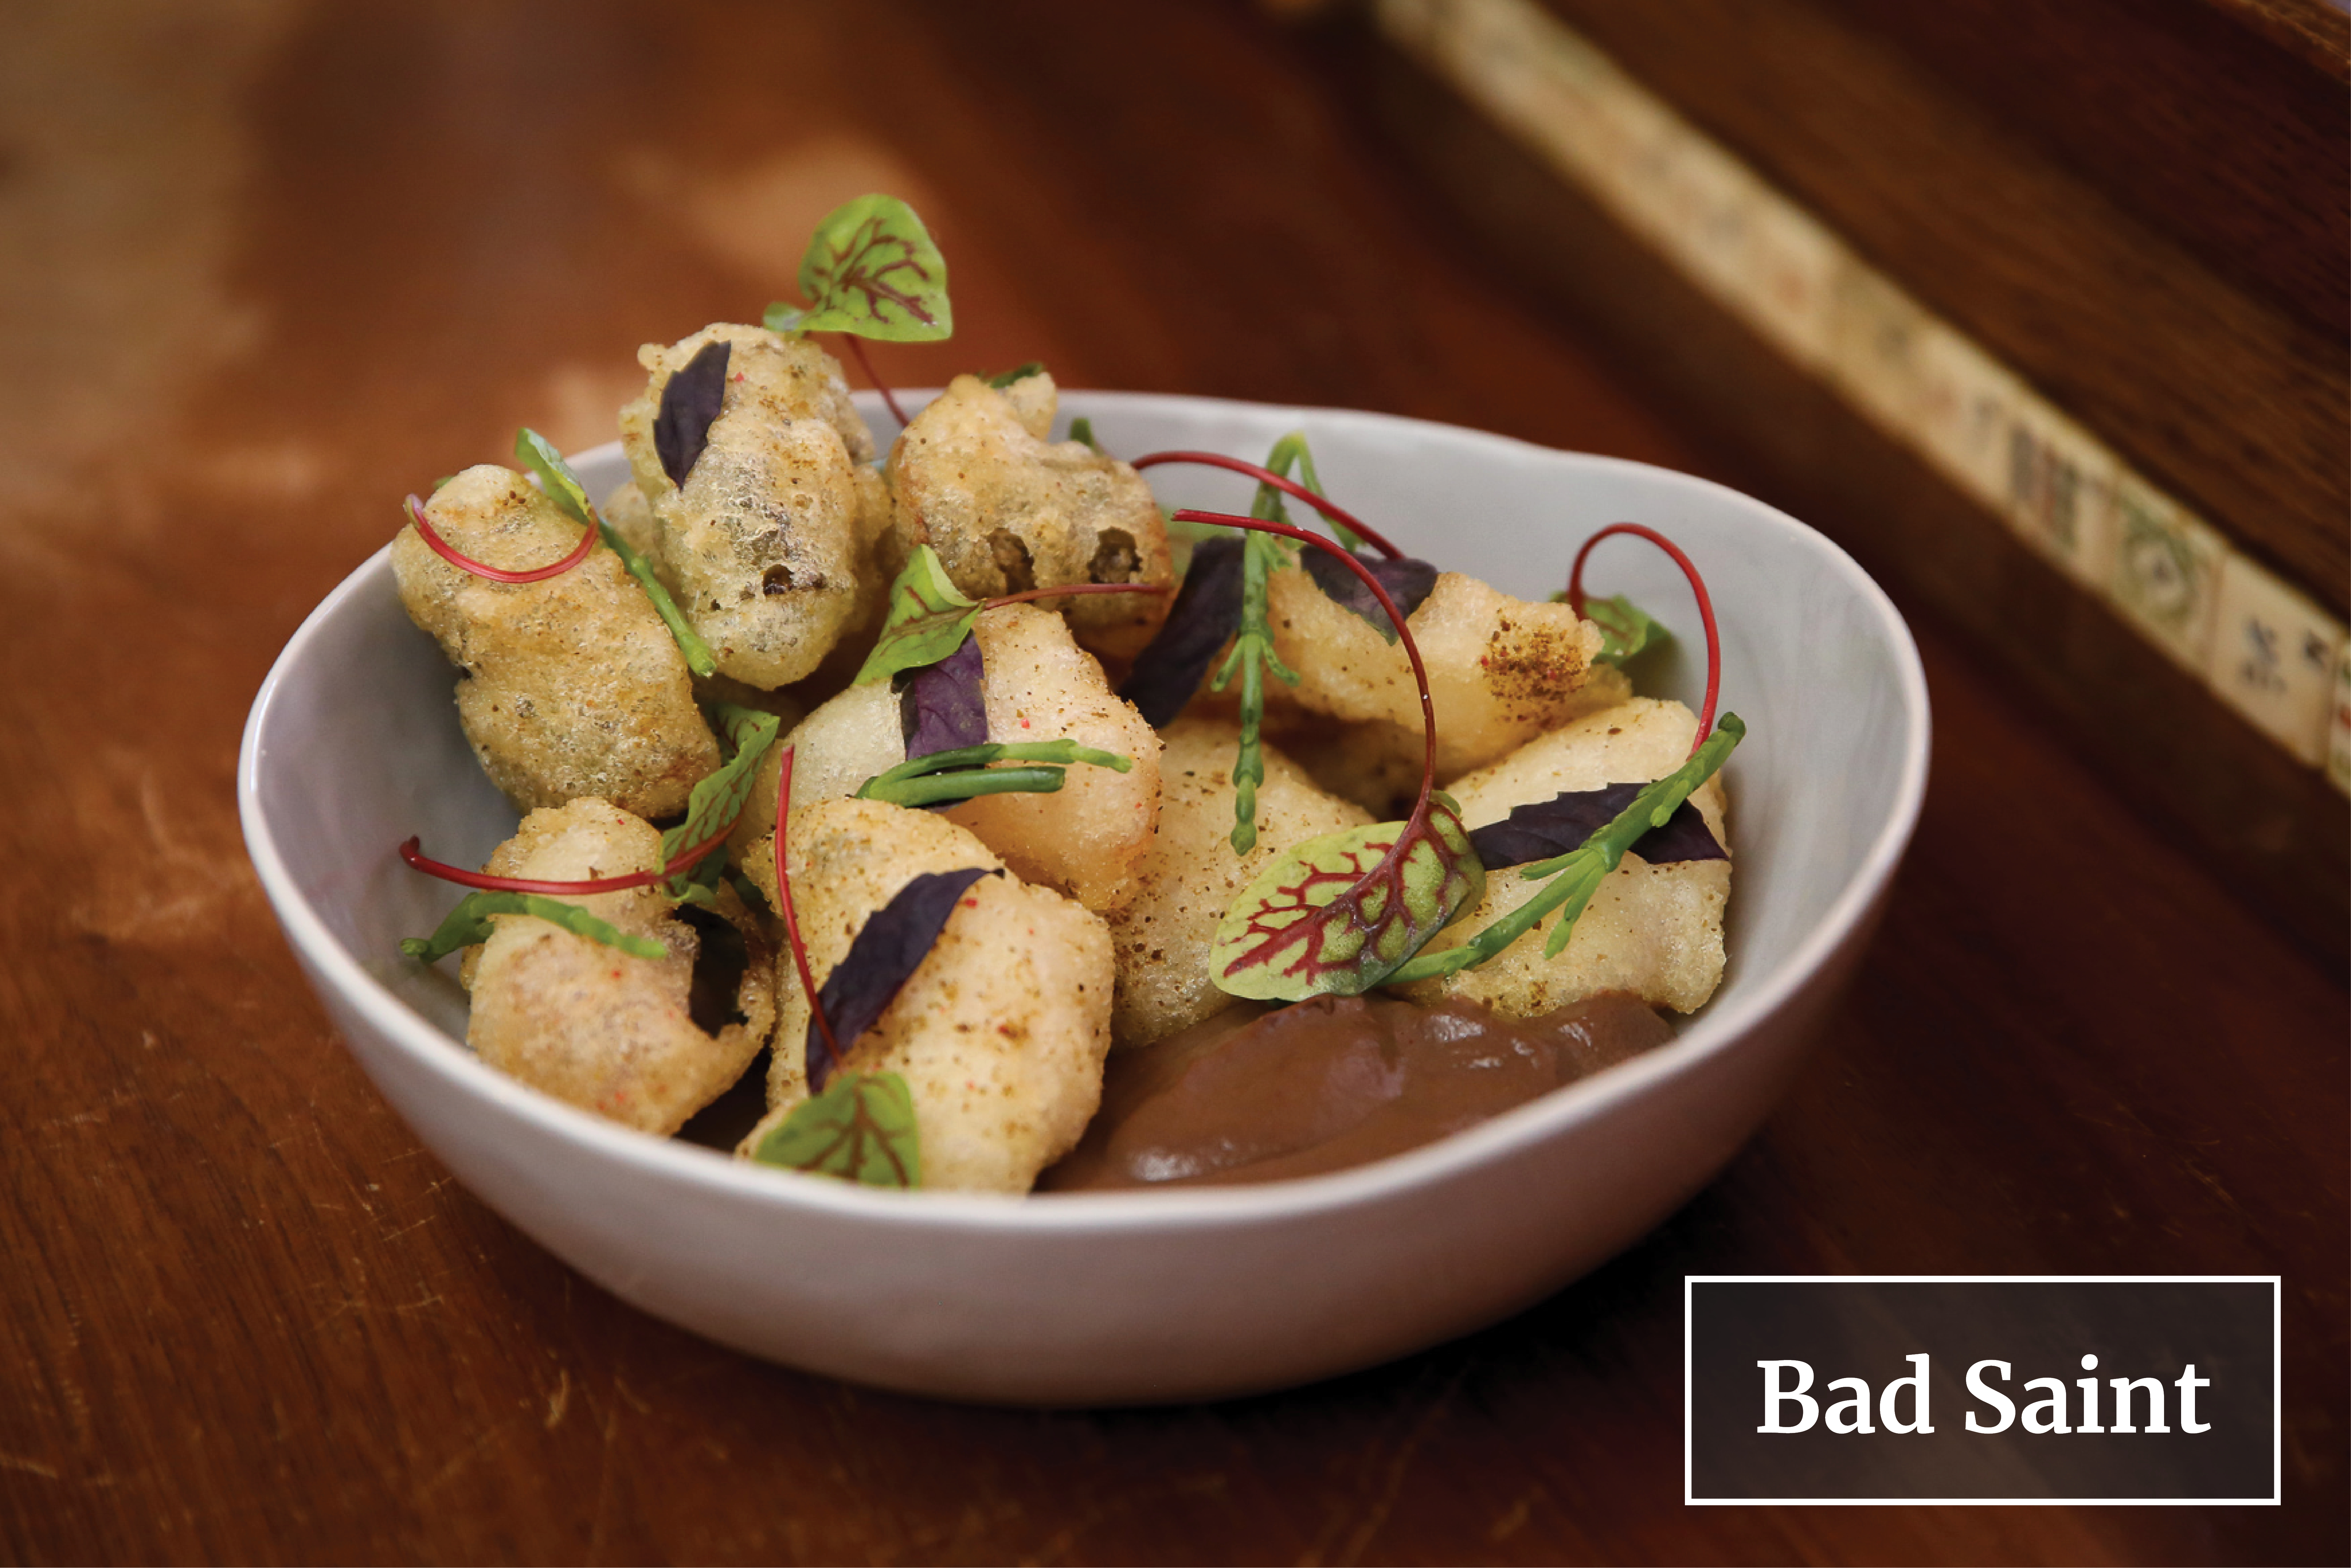 Tom Cunanan of Bad Saint is a finalist in the Best Chef: Mid-Atlantic category. Winners will be announced at the JBF Awards Gala on May 6. (Image: Amanda Andrade-Rhoades/ DC Refined)